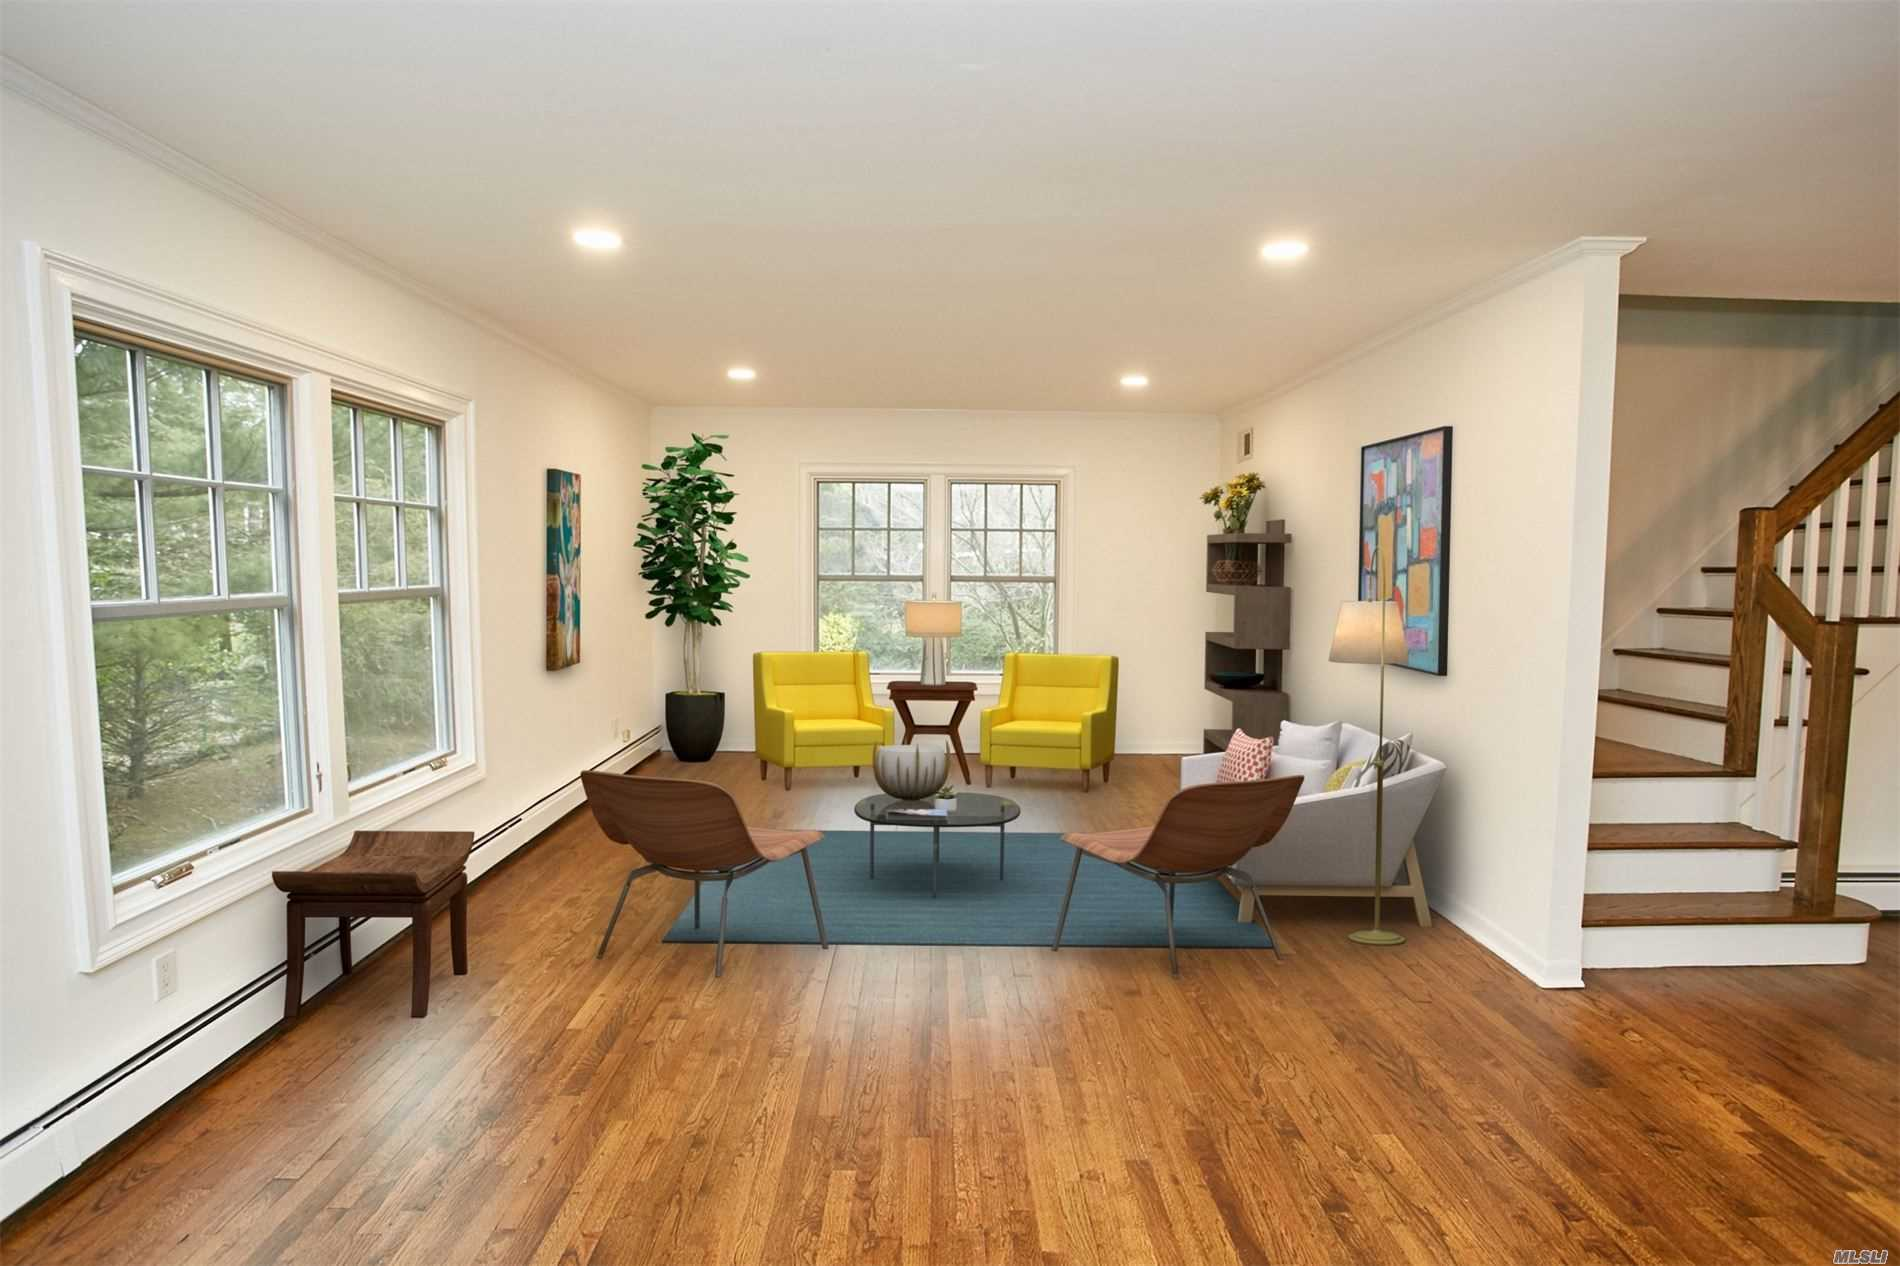 Mint Plandome Manor colonial with spectacular waterviews of Manhasset Bay. Private park and beach access. 5BR's, 2.5 bths situated on shy half acre flat yard. Walk to LIRR, town and shopping